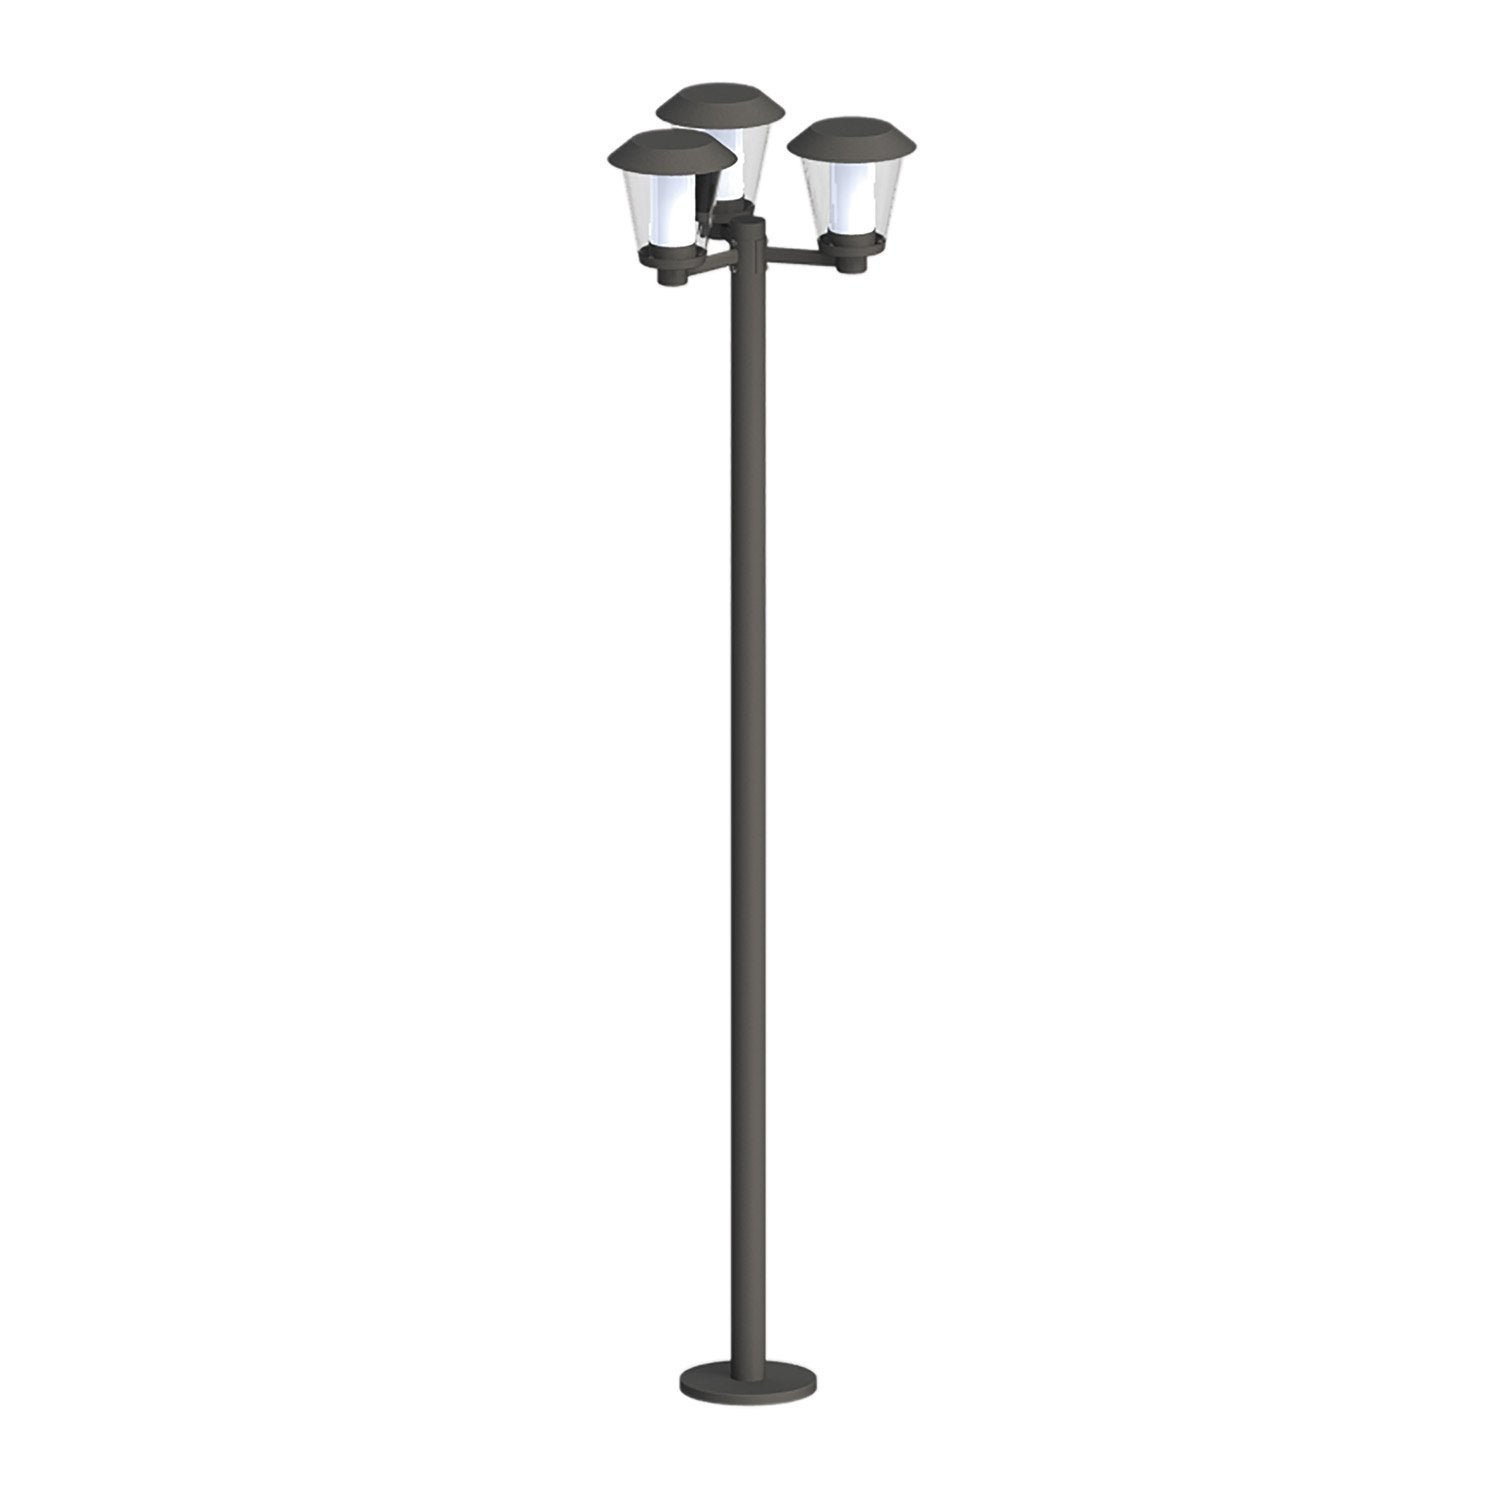 Lampadaire ext rieur paterno led int gr e 840 lm noir for Lampadaire interieur led